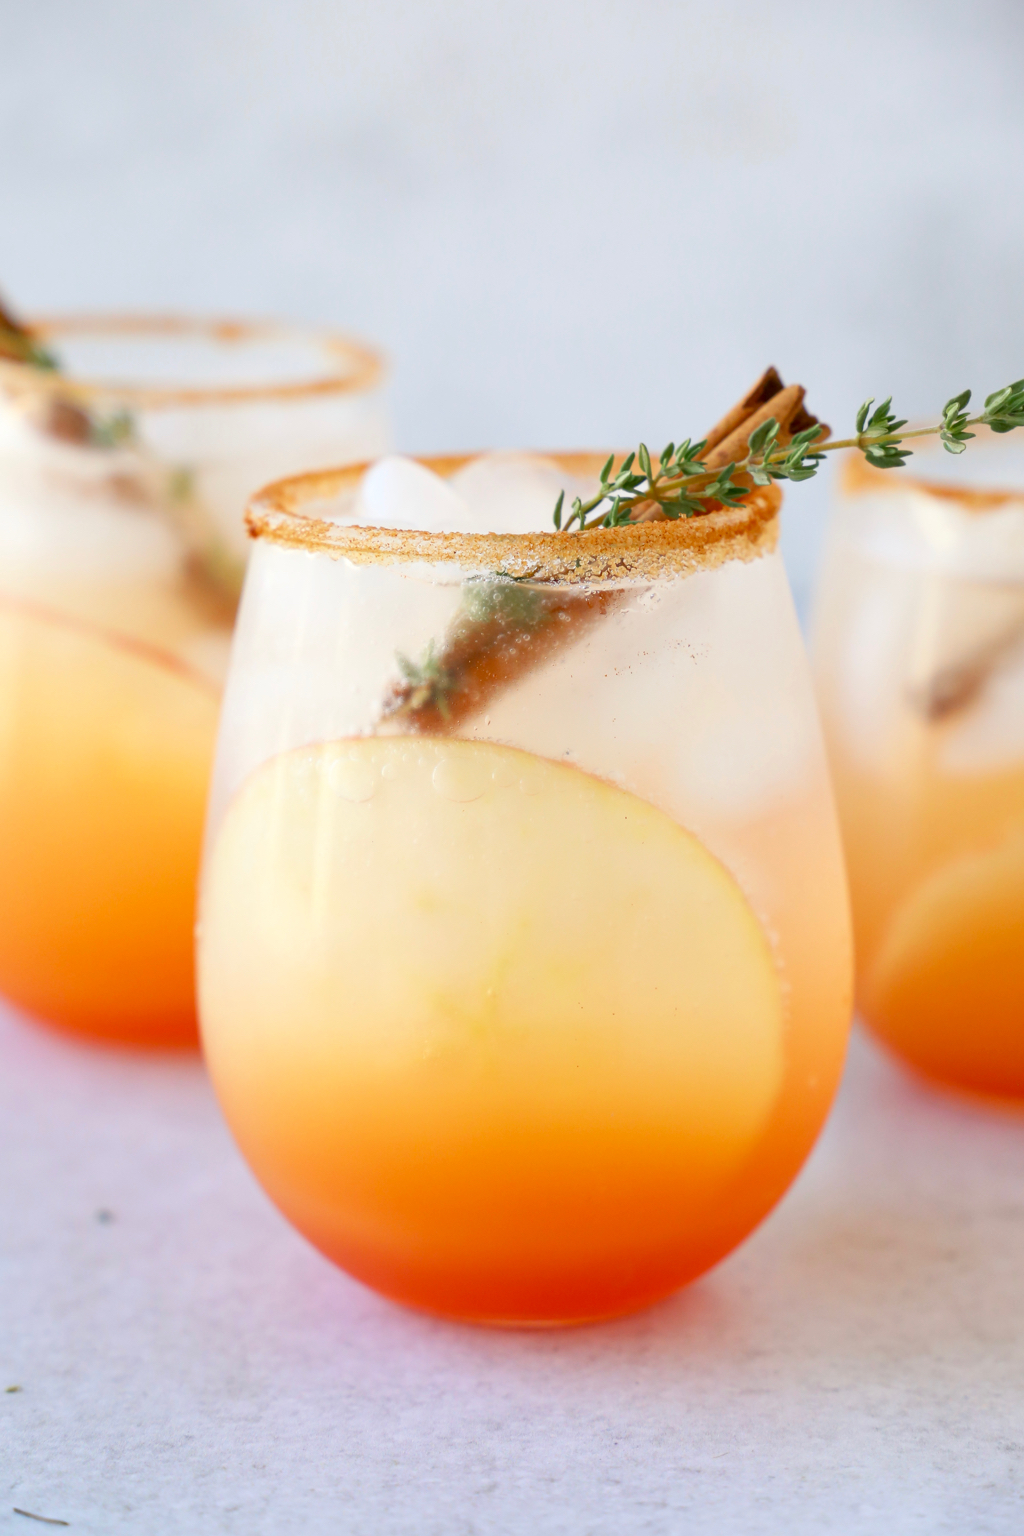 a close up of three glasses of a red orange colored cocktail with a cinnamon stick and thyme leave in each glass